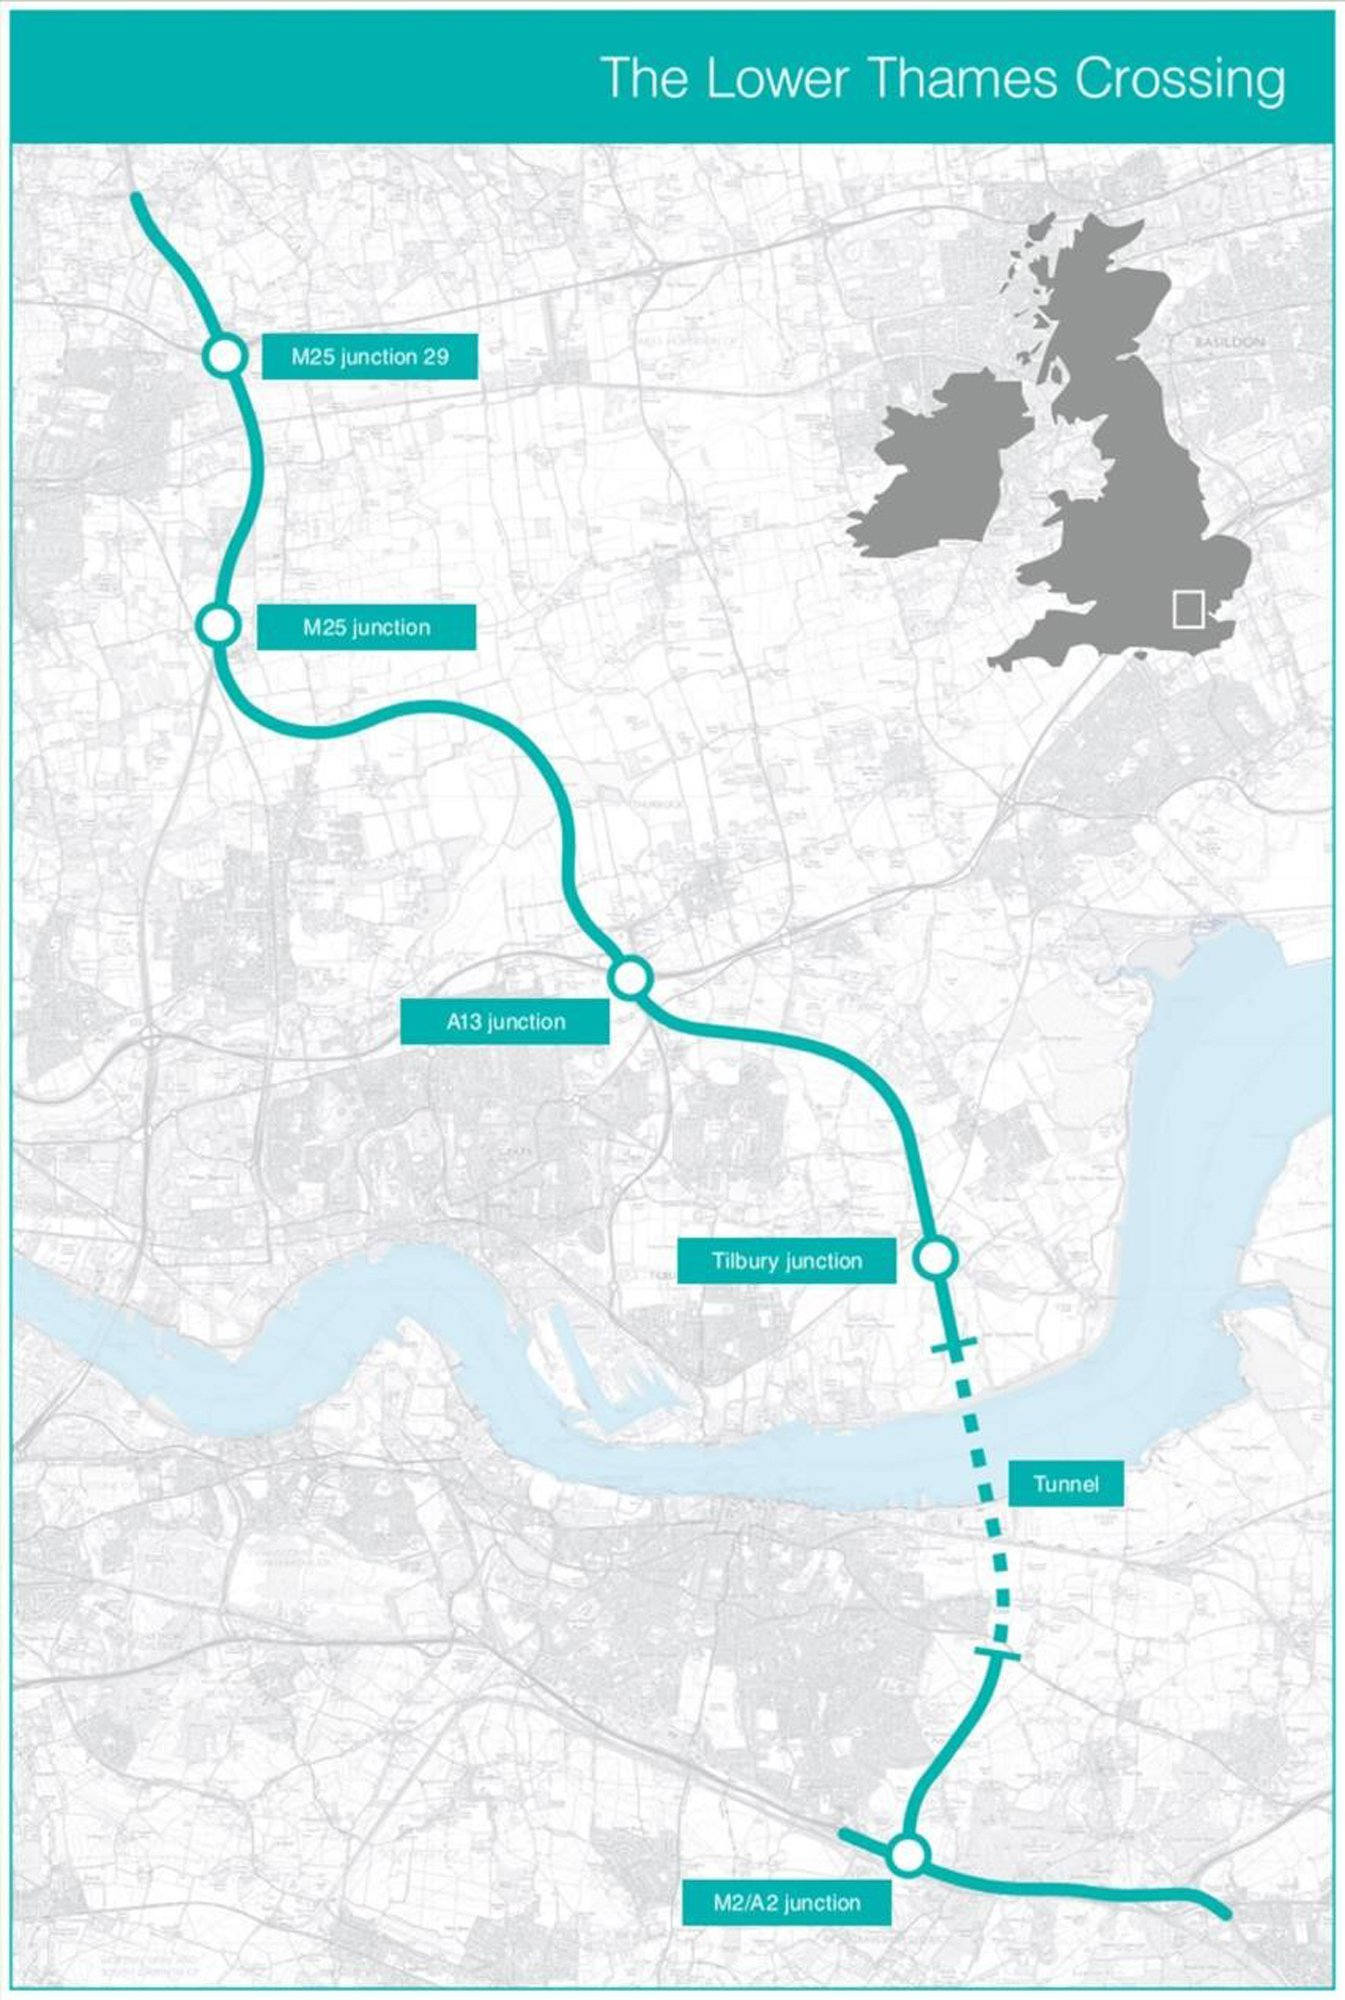 Undated handout image issued by Highways England of the latest proposed route of the new Lower Thames Crossing, as plans for the new multi-million pound road tunnel beneath the Thames have been updated to boost capacity. PRESS ASSOCIATION Photo. Issue date: Wednesday October 10, 2018. The whole route of the Lower Thames Crossing will be a three-lane dual carriageway rather than two lanes in some sections, according to the latest designs. See PA story TRANSPORT Crossing. Photo credit should read: Highways England/PA Wire NOTE TO EDITORS: This handout photo may only be used in for editorial reporting purposes for the contemporaneous illustration of events, things or the people in the image or facts mentioned in the caption. Reuse of the picture may require further permission from the copyright holder.